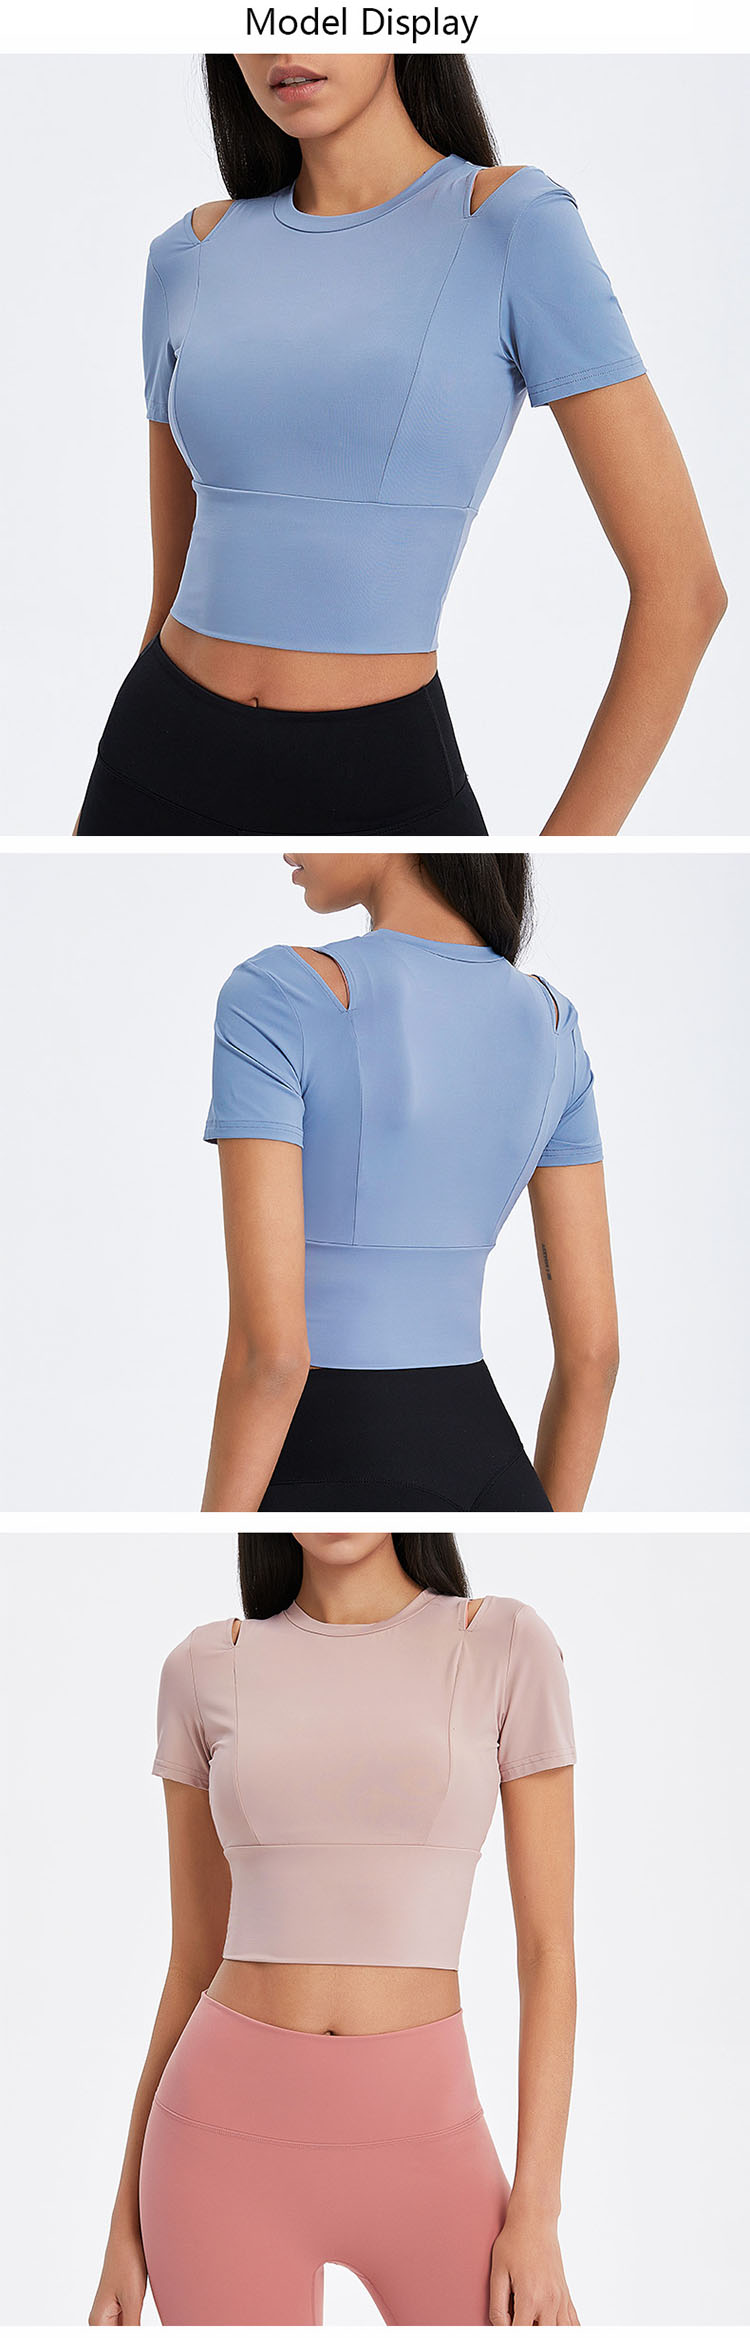 Shoulder line design, showing sexy, breathable and comfortable.